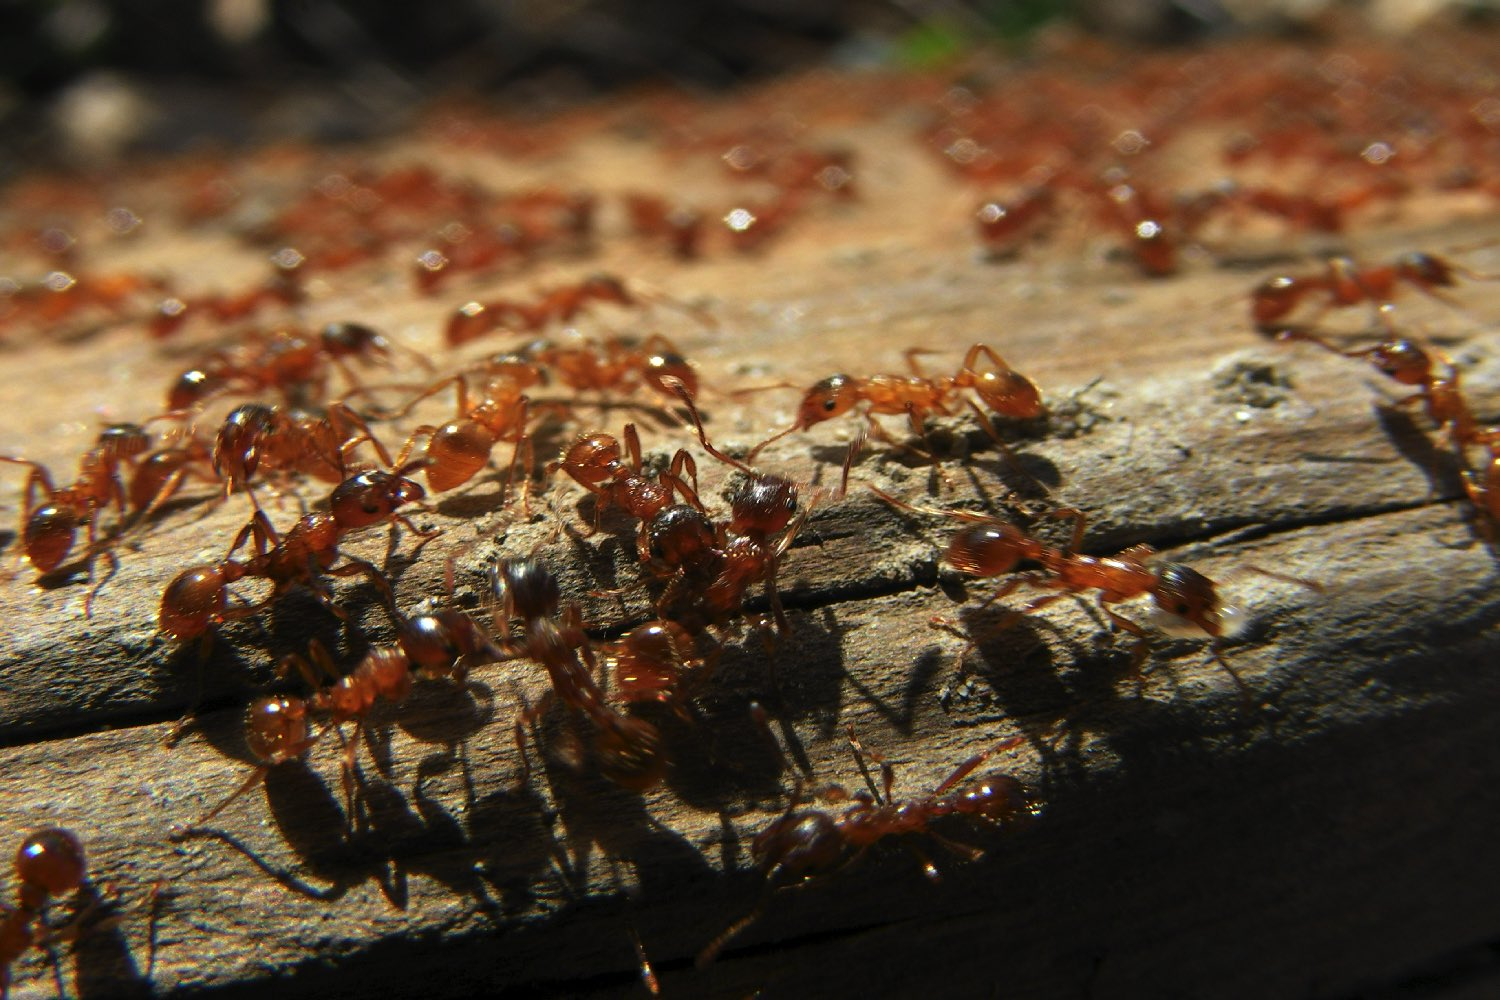 By Studying Ant Colonies Mit Devised A Totally New Way To